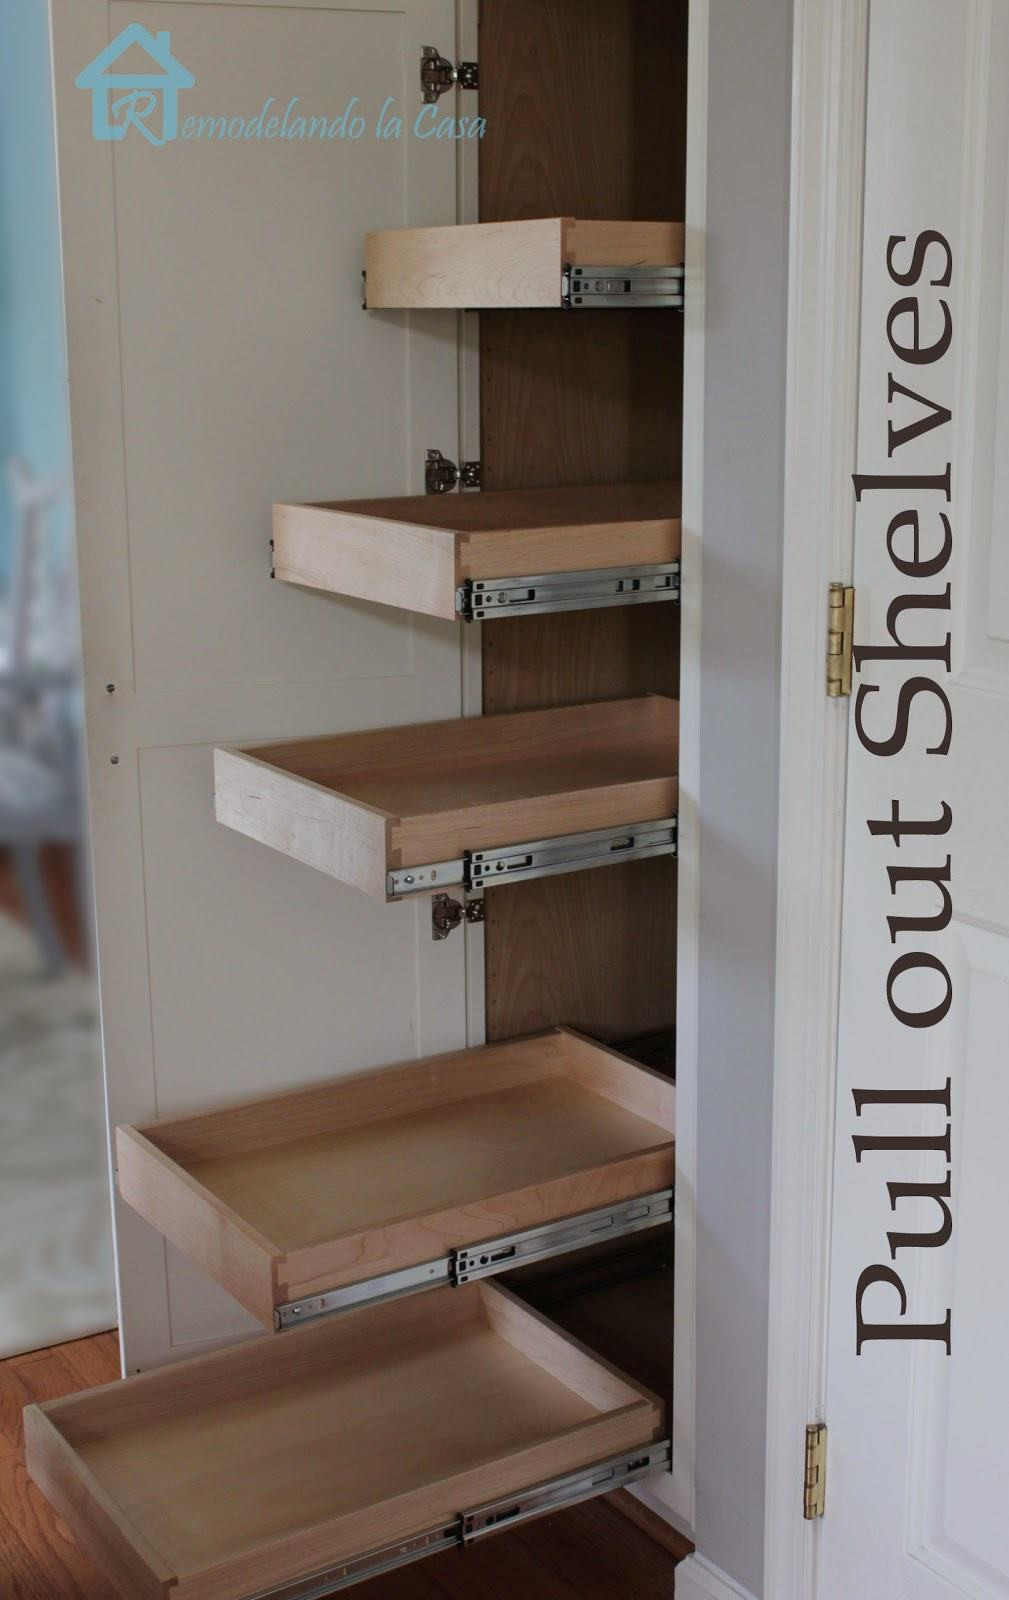 Best ideas about Kitchen Shelves DIY . Save or Pin Cheap Home Improvement Ideas DIY Projects Craft Ideas Now.